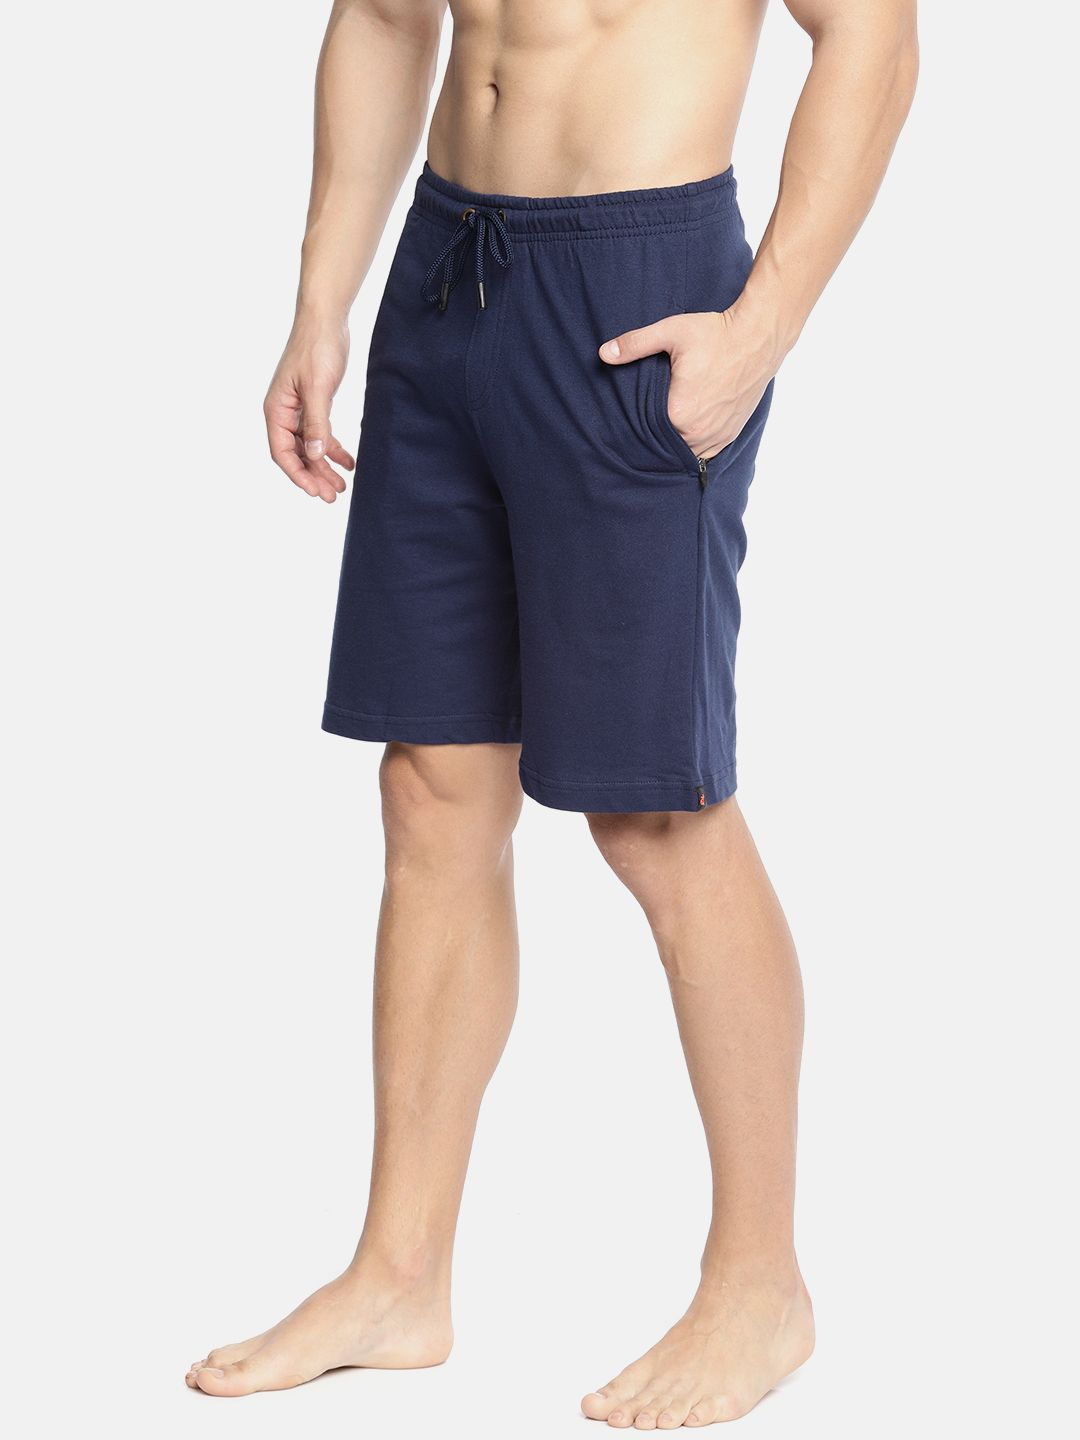 The Blue Sail Everywear Shorts